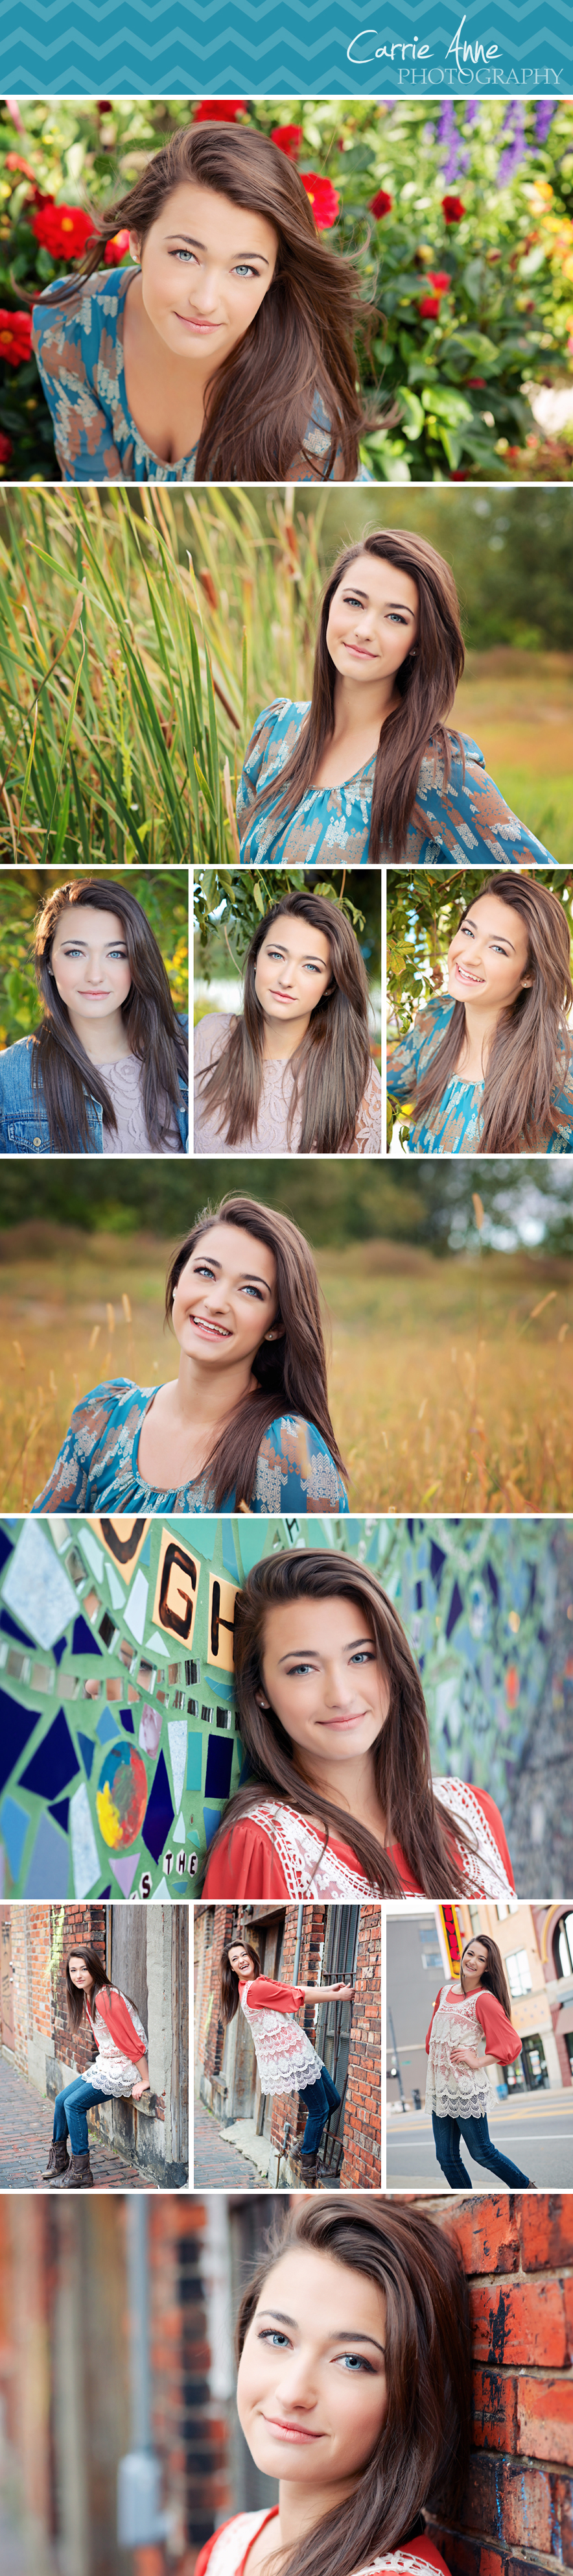 Colorful, Funky Senior Girl Photography Ultimate Senior Girl Session in Ada, Grand Rapids, Cascade, Michigan. Natural, bright, cheery, colorful, photography.